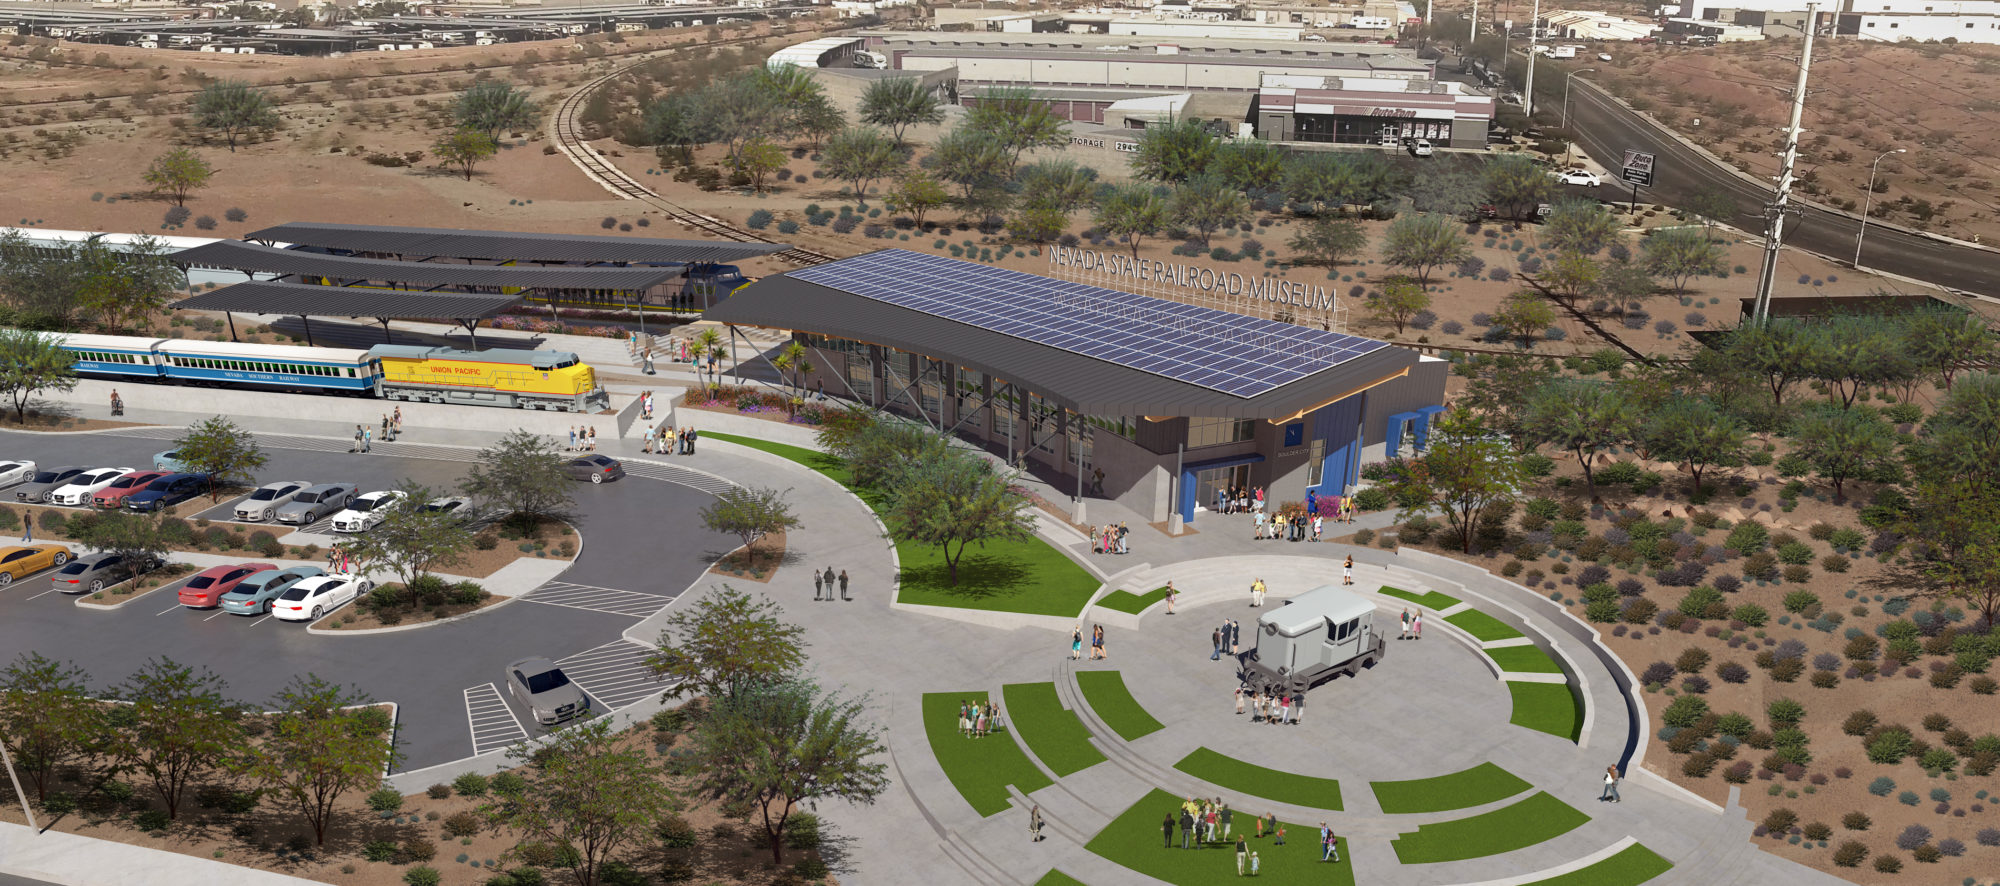 An aerial rendering of the proposed Boulder City Railroad Museum visitor center, designed by LGA Architecture.